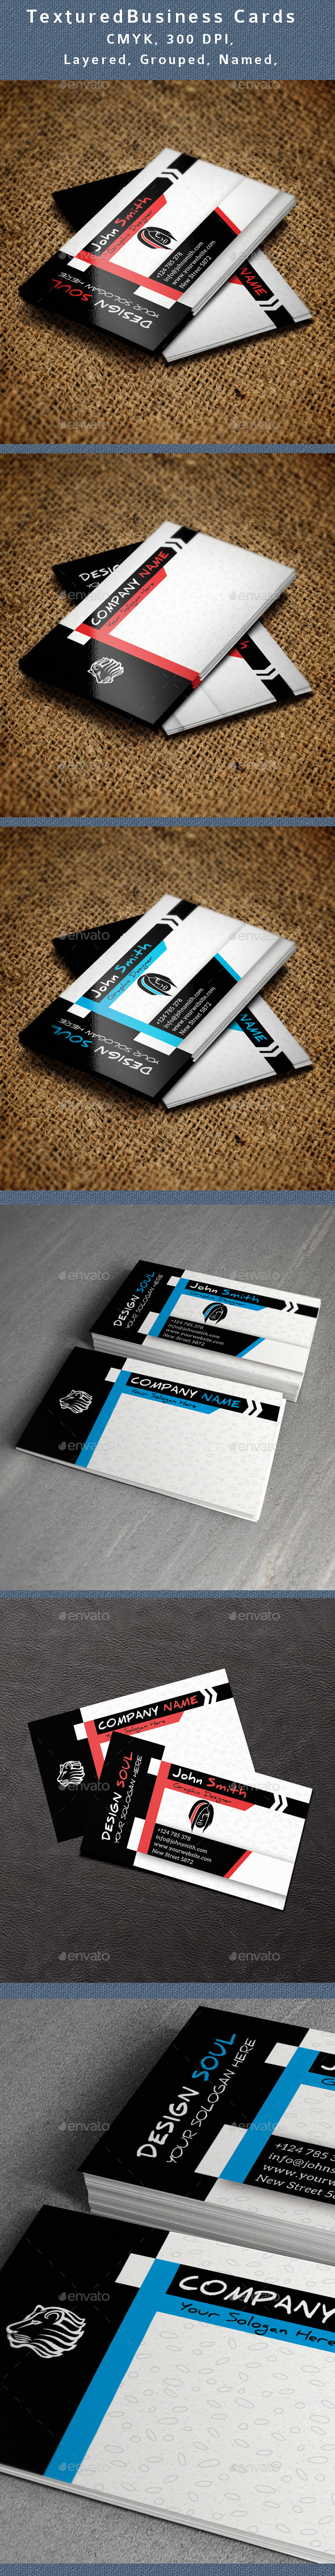 GraphicRiver Textured Business Card V3 11273841